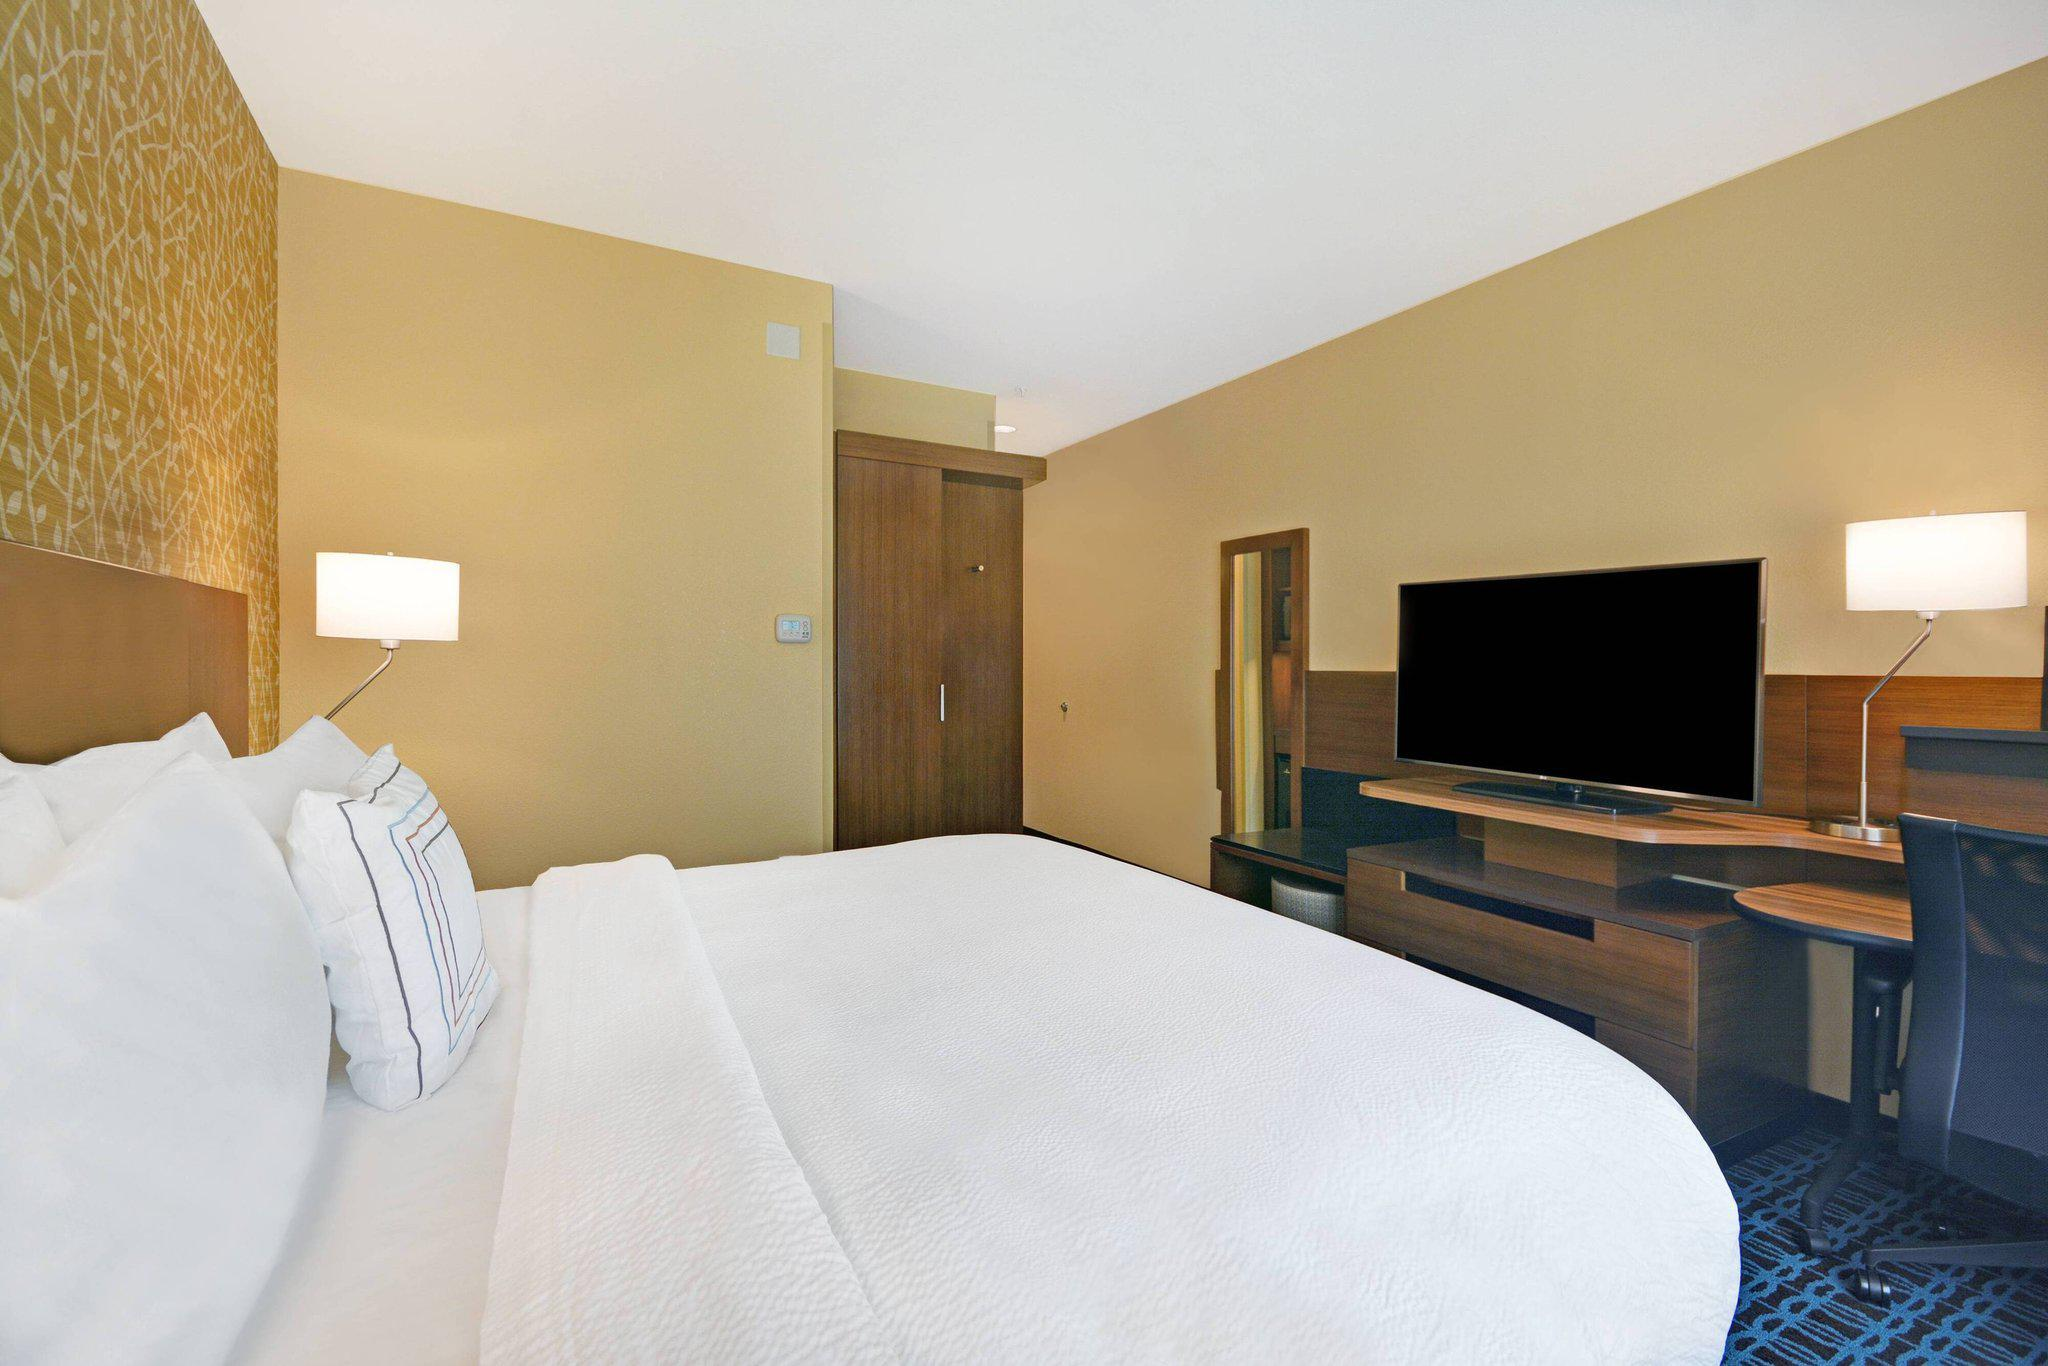 Fairfield Inn & Suites by Marriott Savannah SW/Richmond Hill